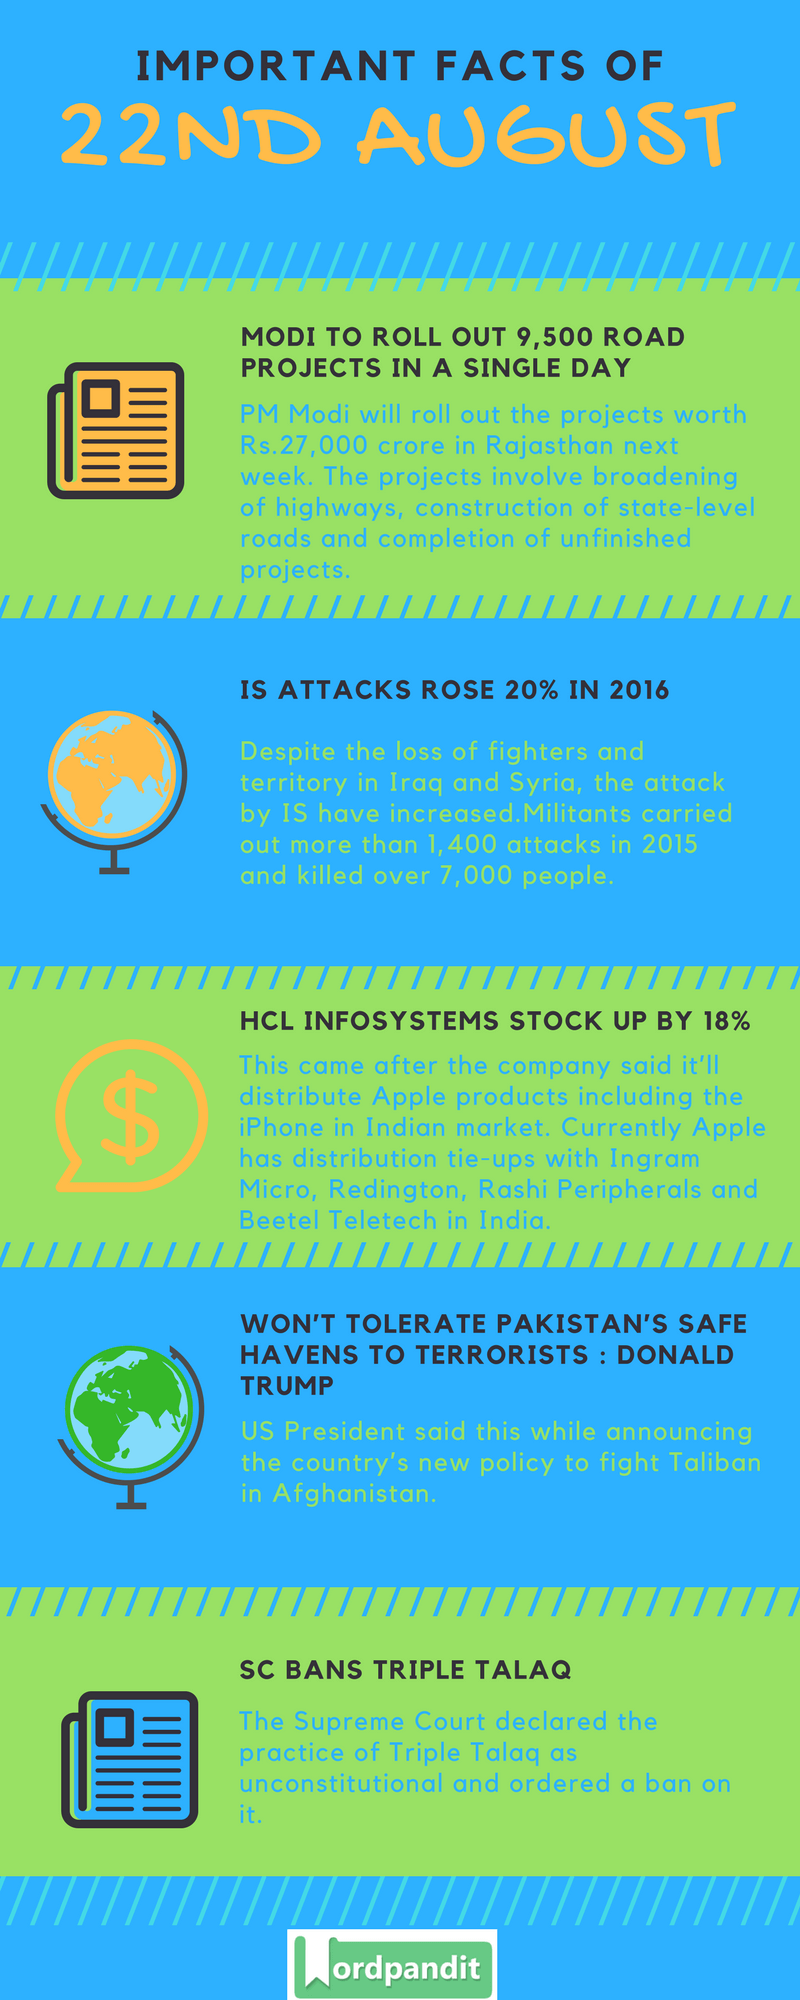 Daily-Current-Affairs-22-august-2017-Current-Affairs-Quiz-august-22-2017-Current-Affairs-Infographic